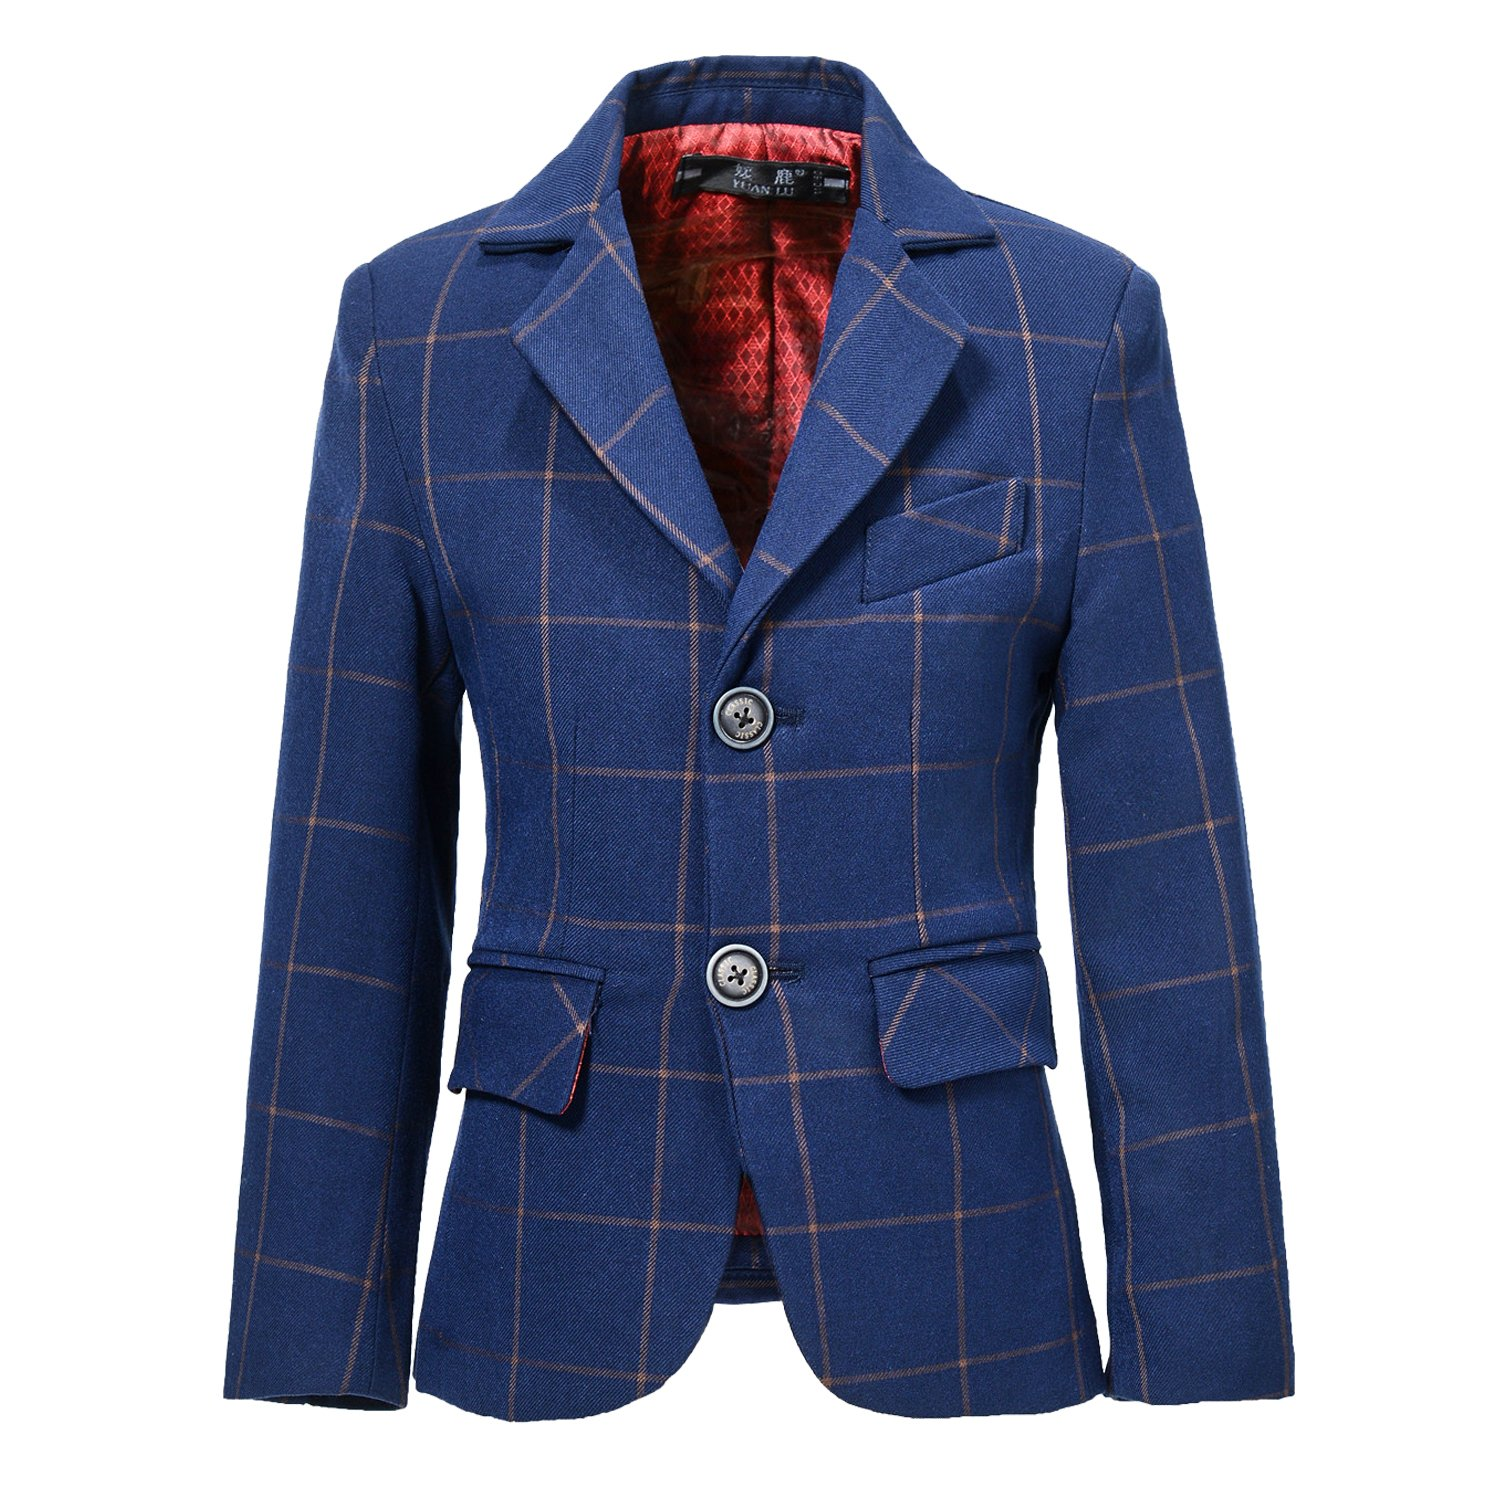 YuanLu Boys Plaid Tuxedo Suits Kids Outfit Jacket For Weddings Size 12 Navy Blue